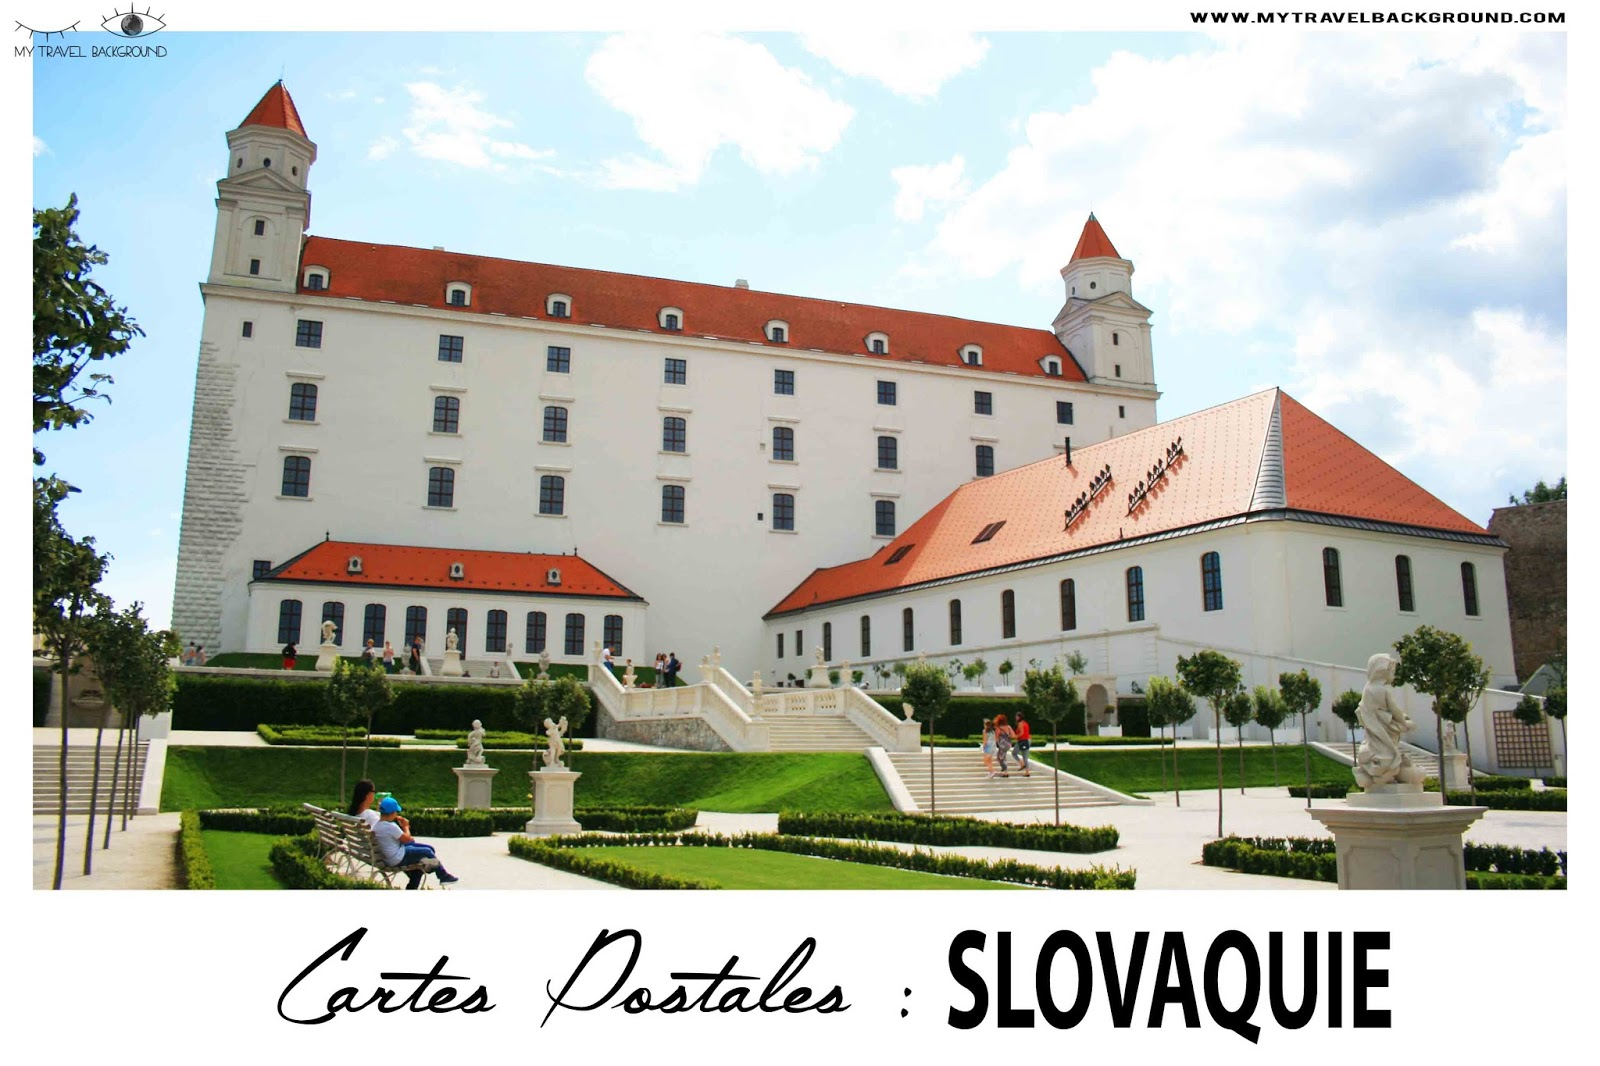 My Travel Background : cartes postales de Slovaquie